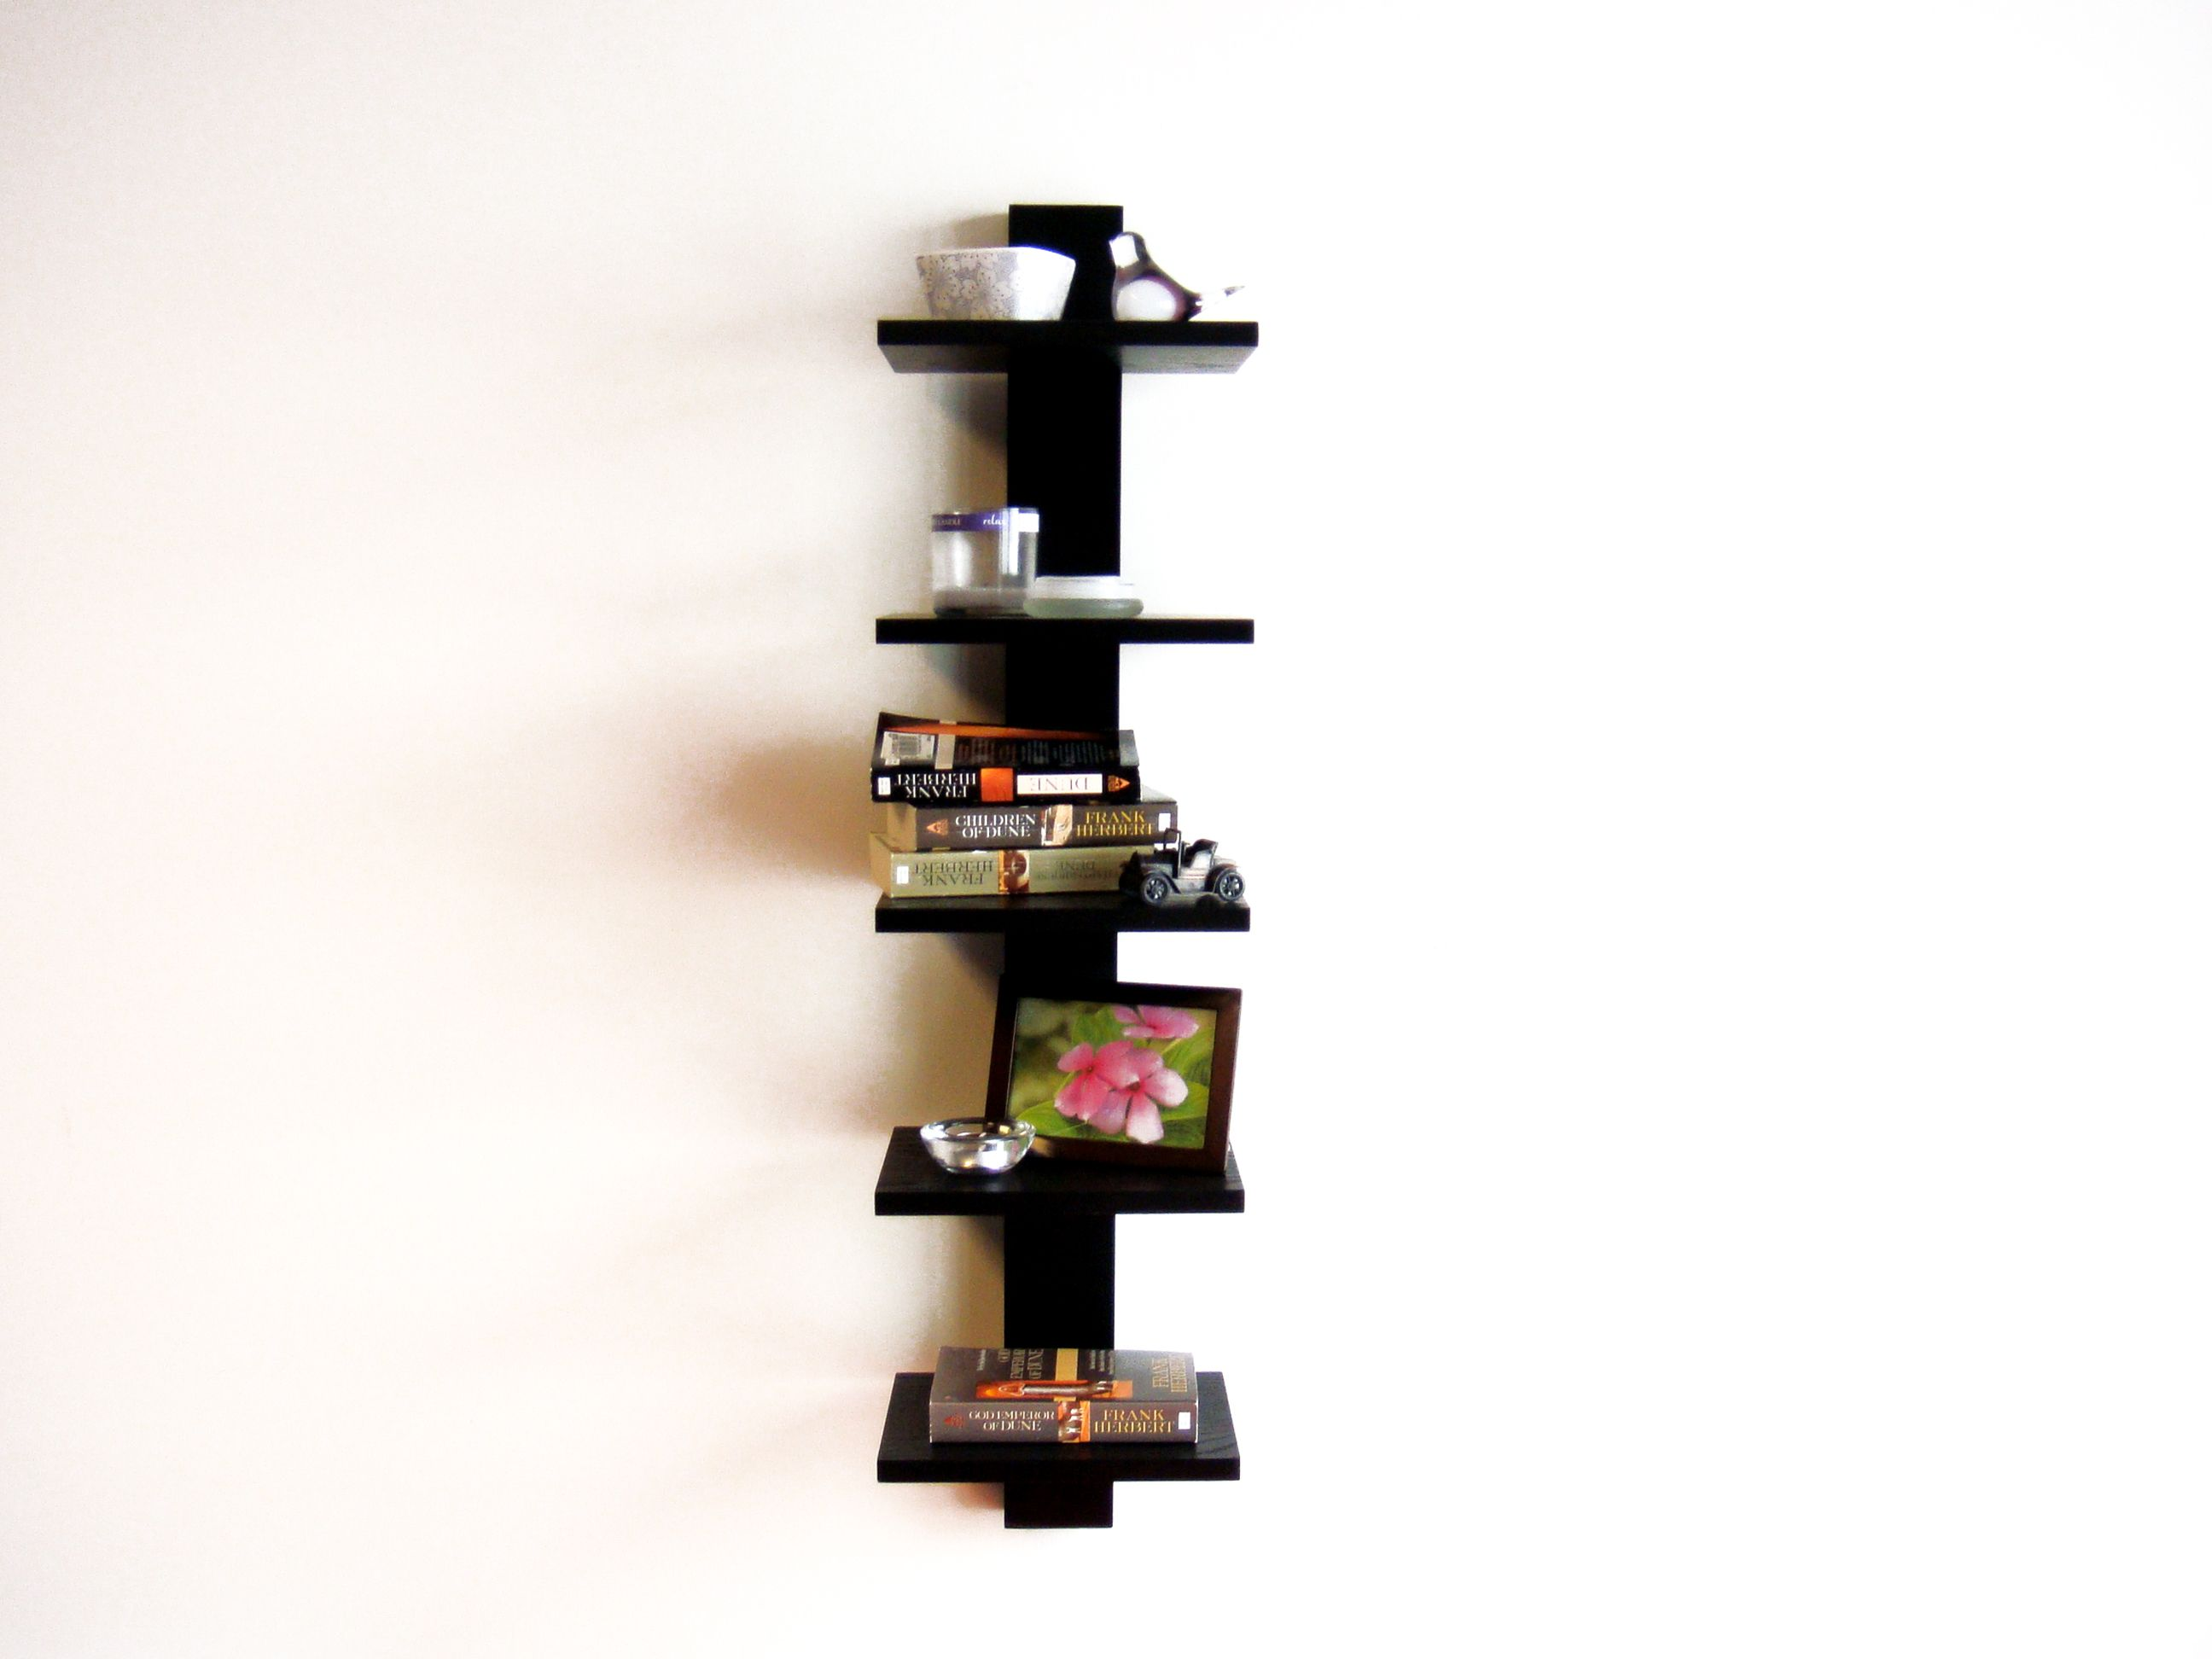 Proman Products Spine Wall Book Shelf Decor Walmart Com Wall